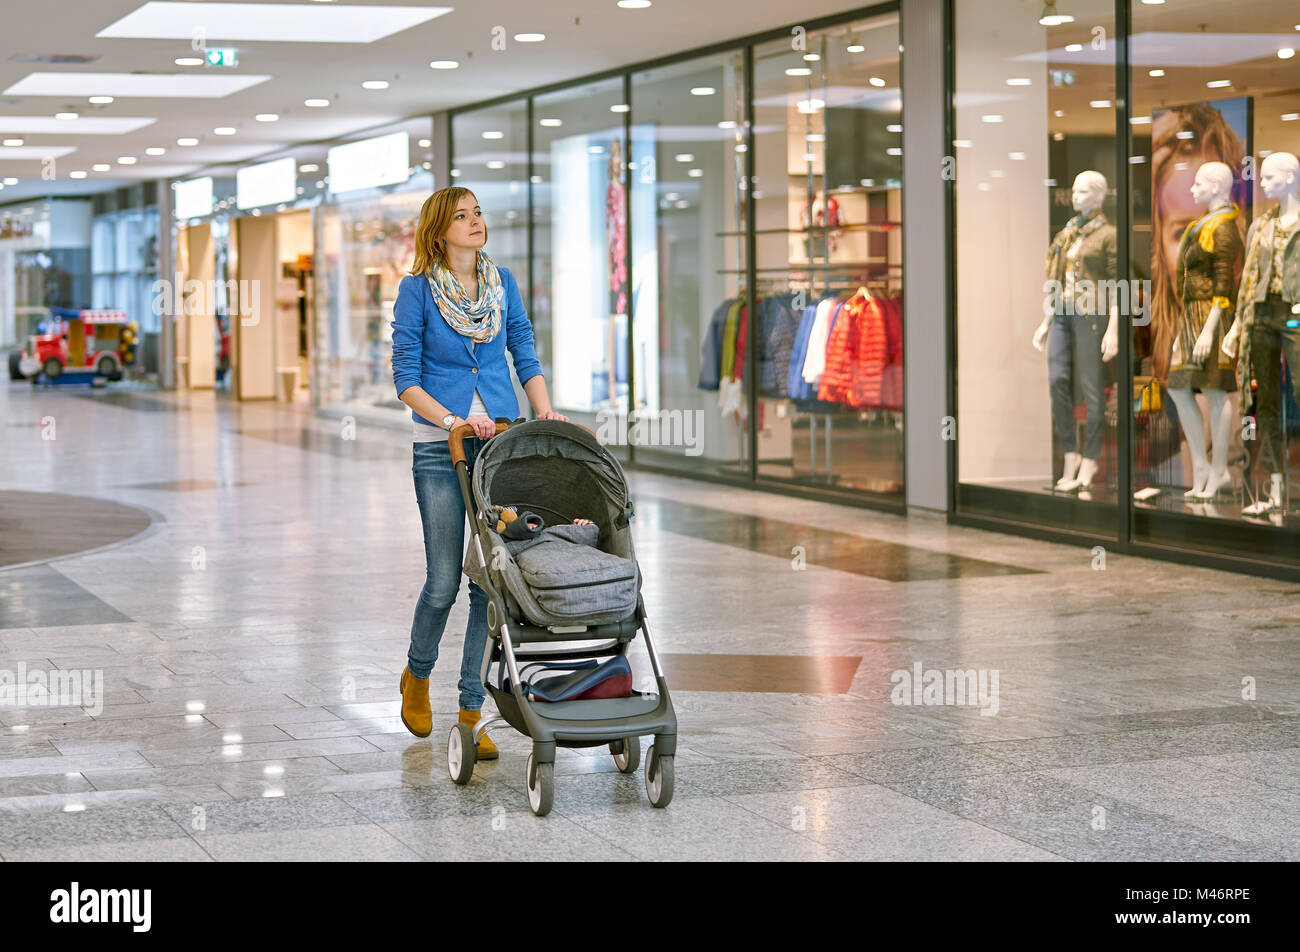 Young woman with baby during shopping - Stock Image